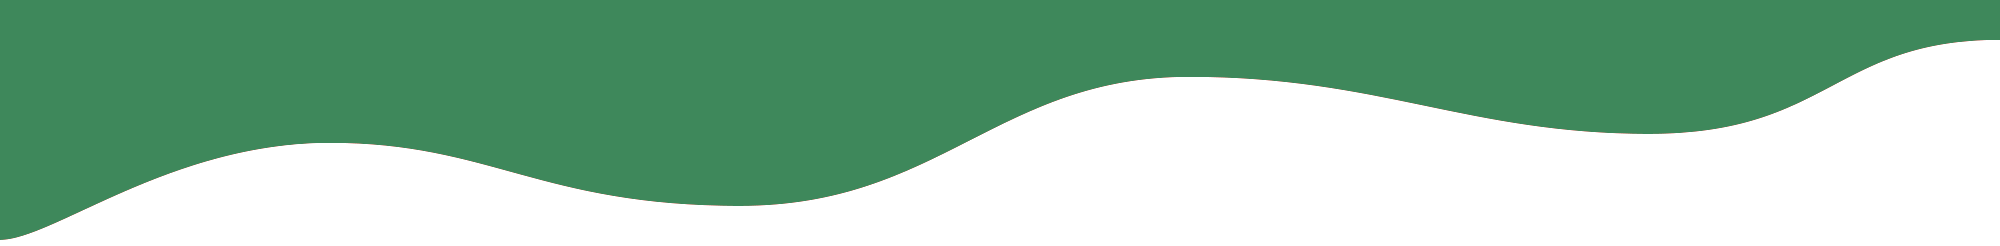 Green wave border